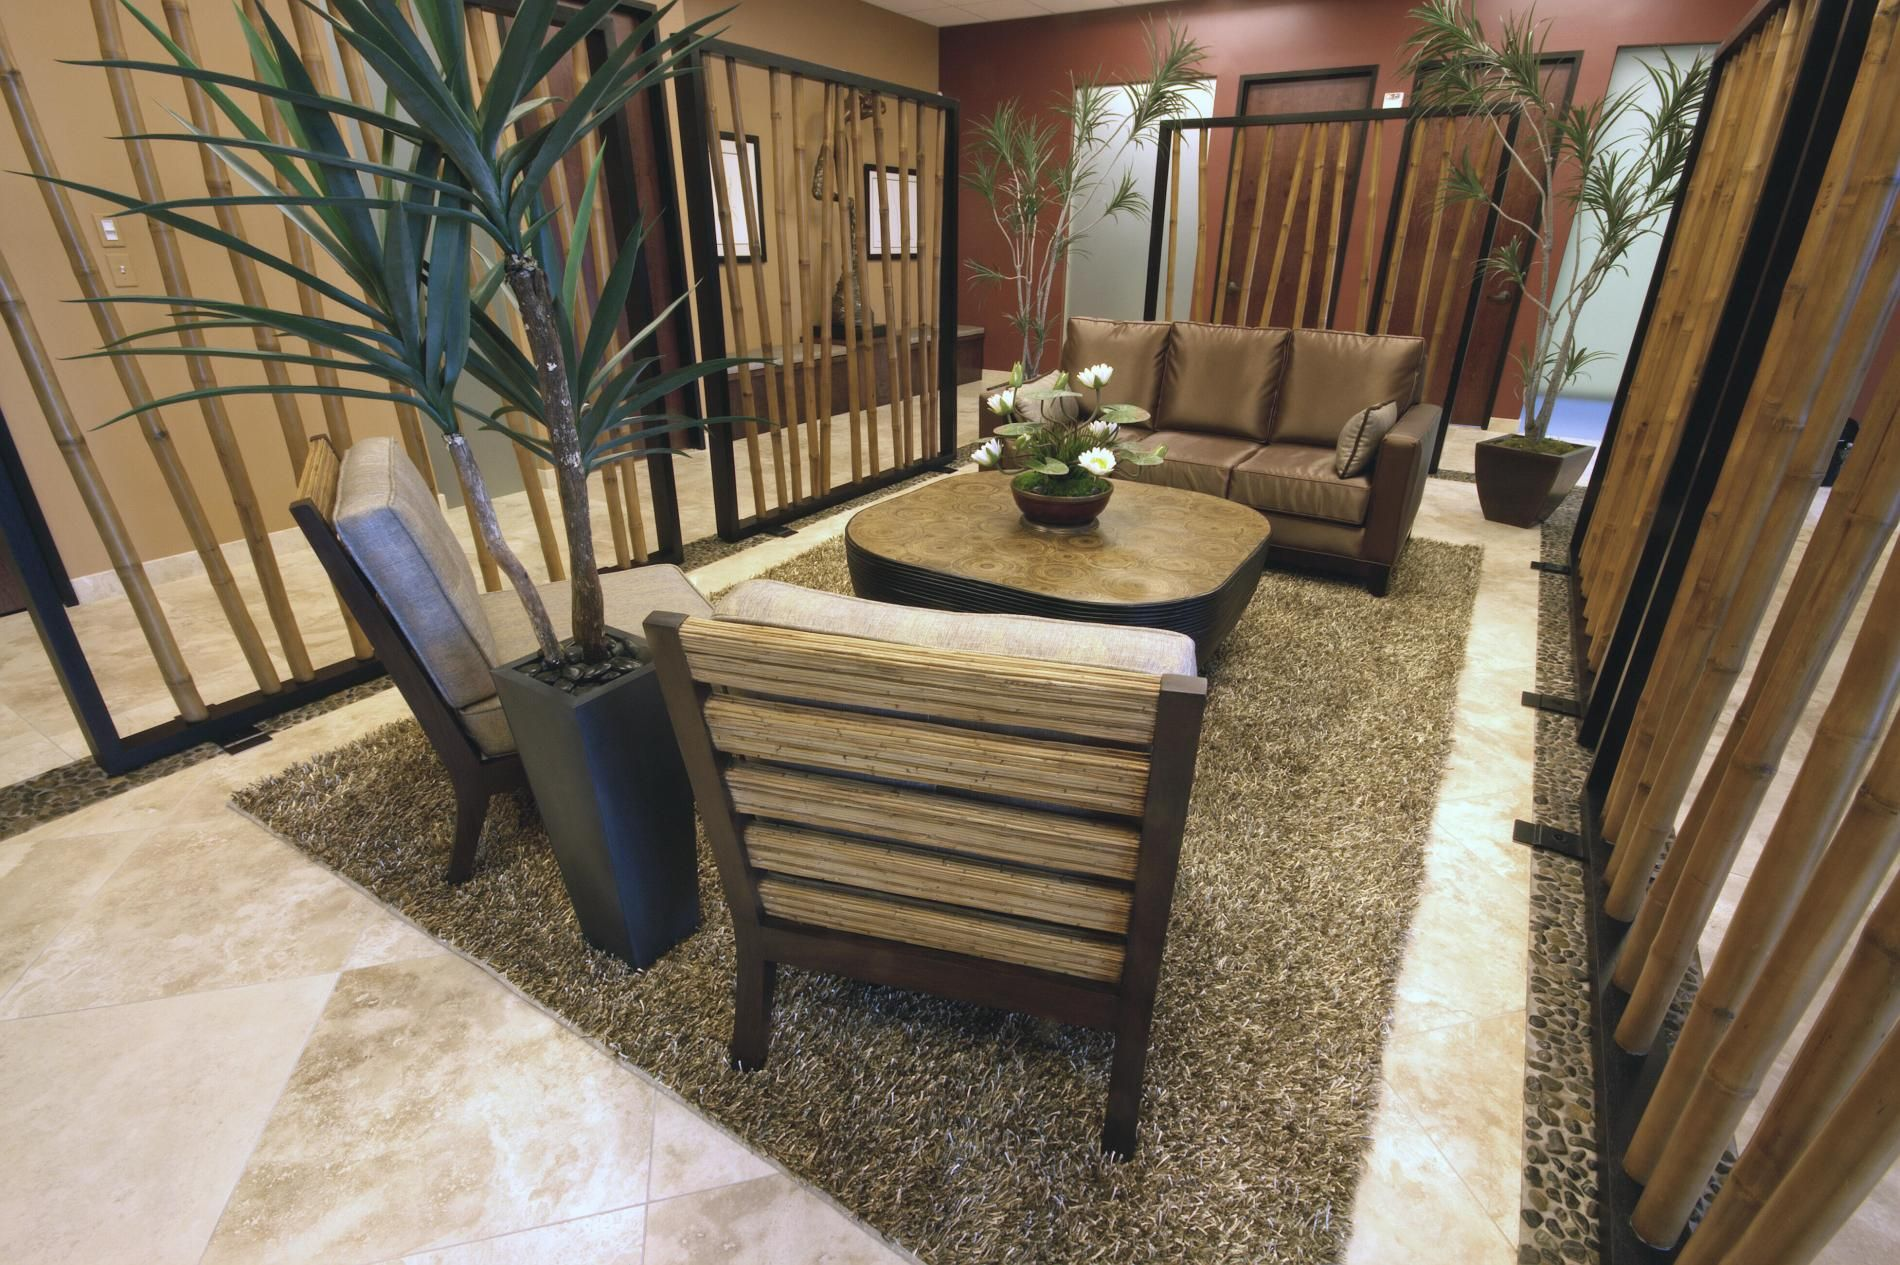 bamboo screen walls and a pebbled stone border physically and